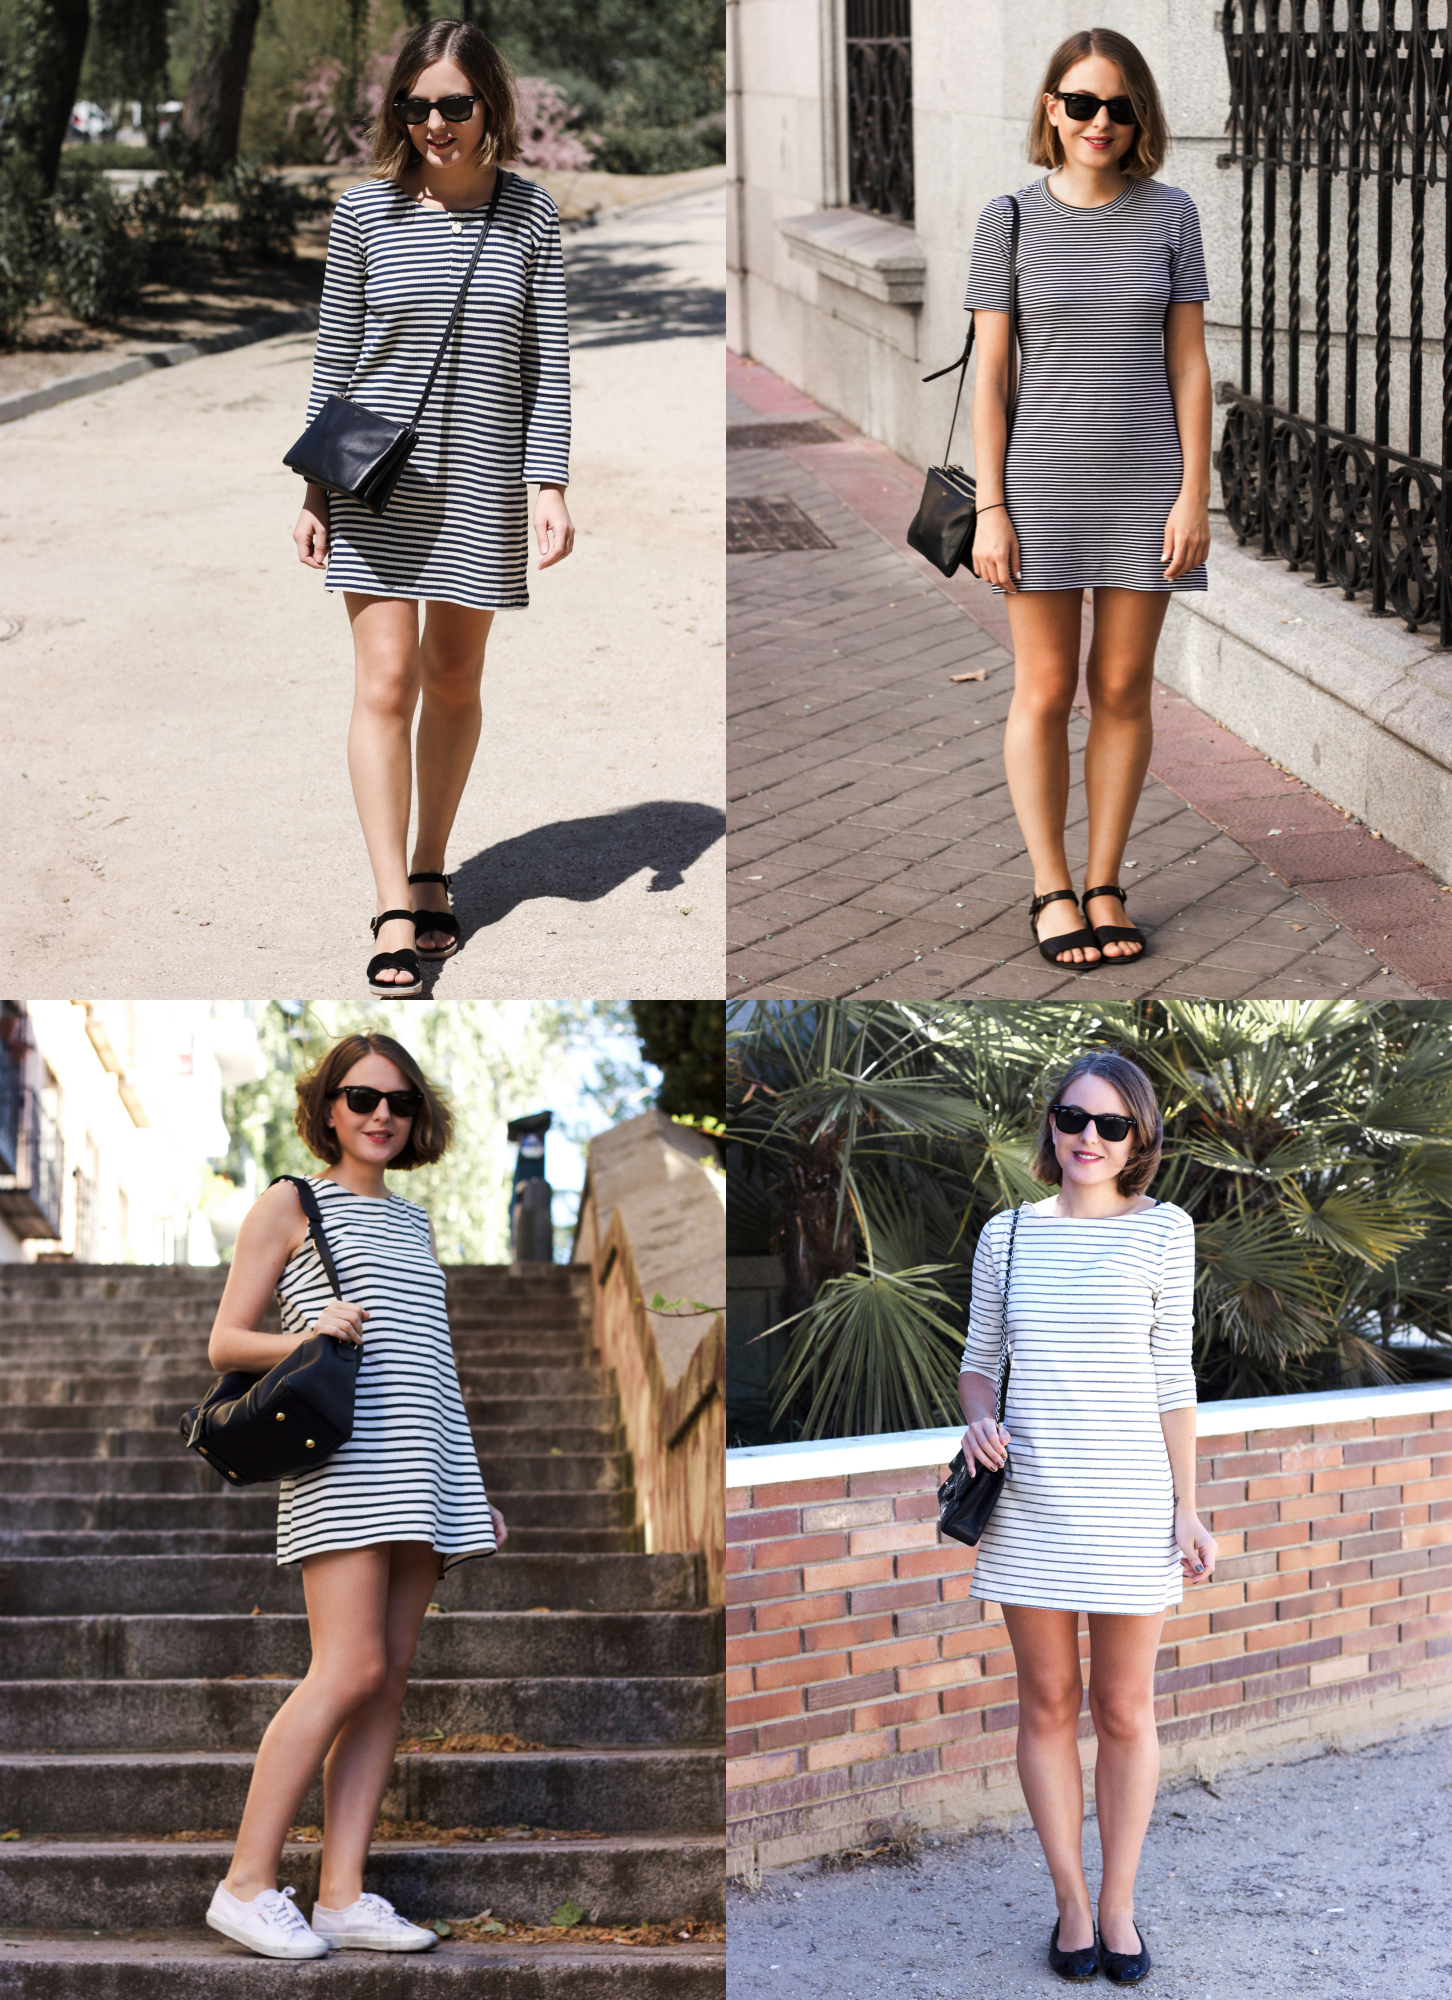 Trini blog | Striped dresses